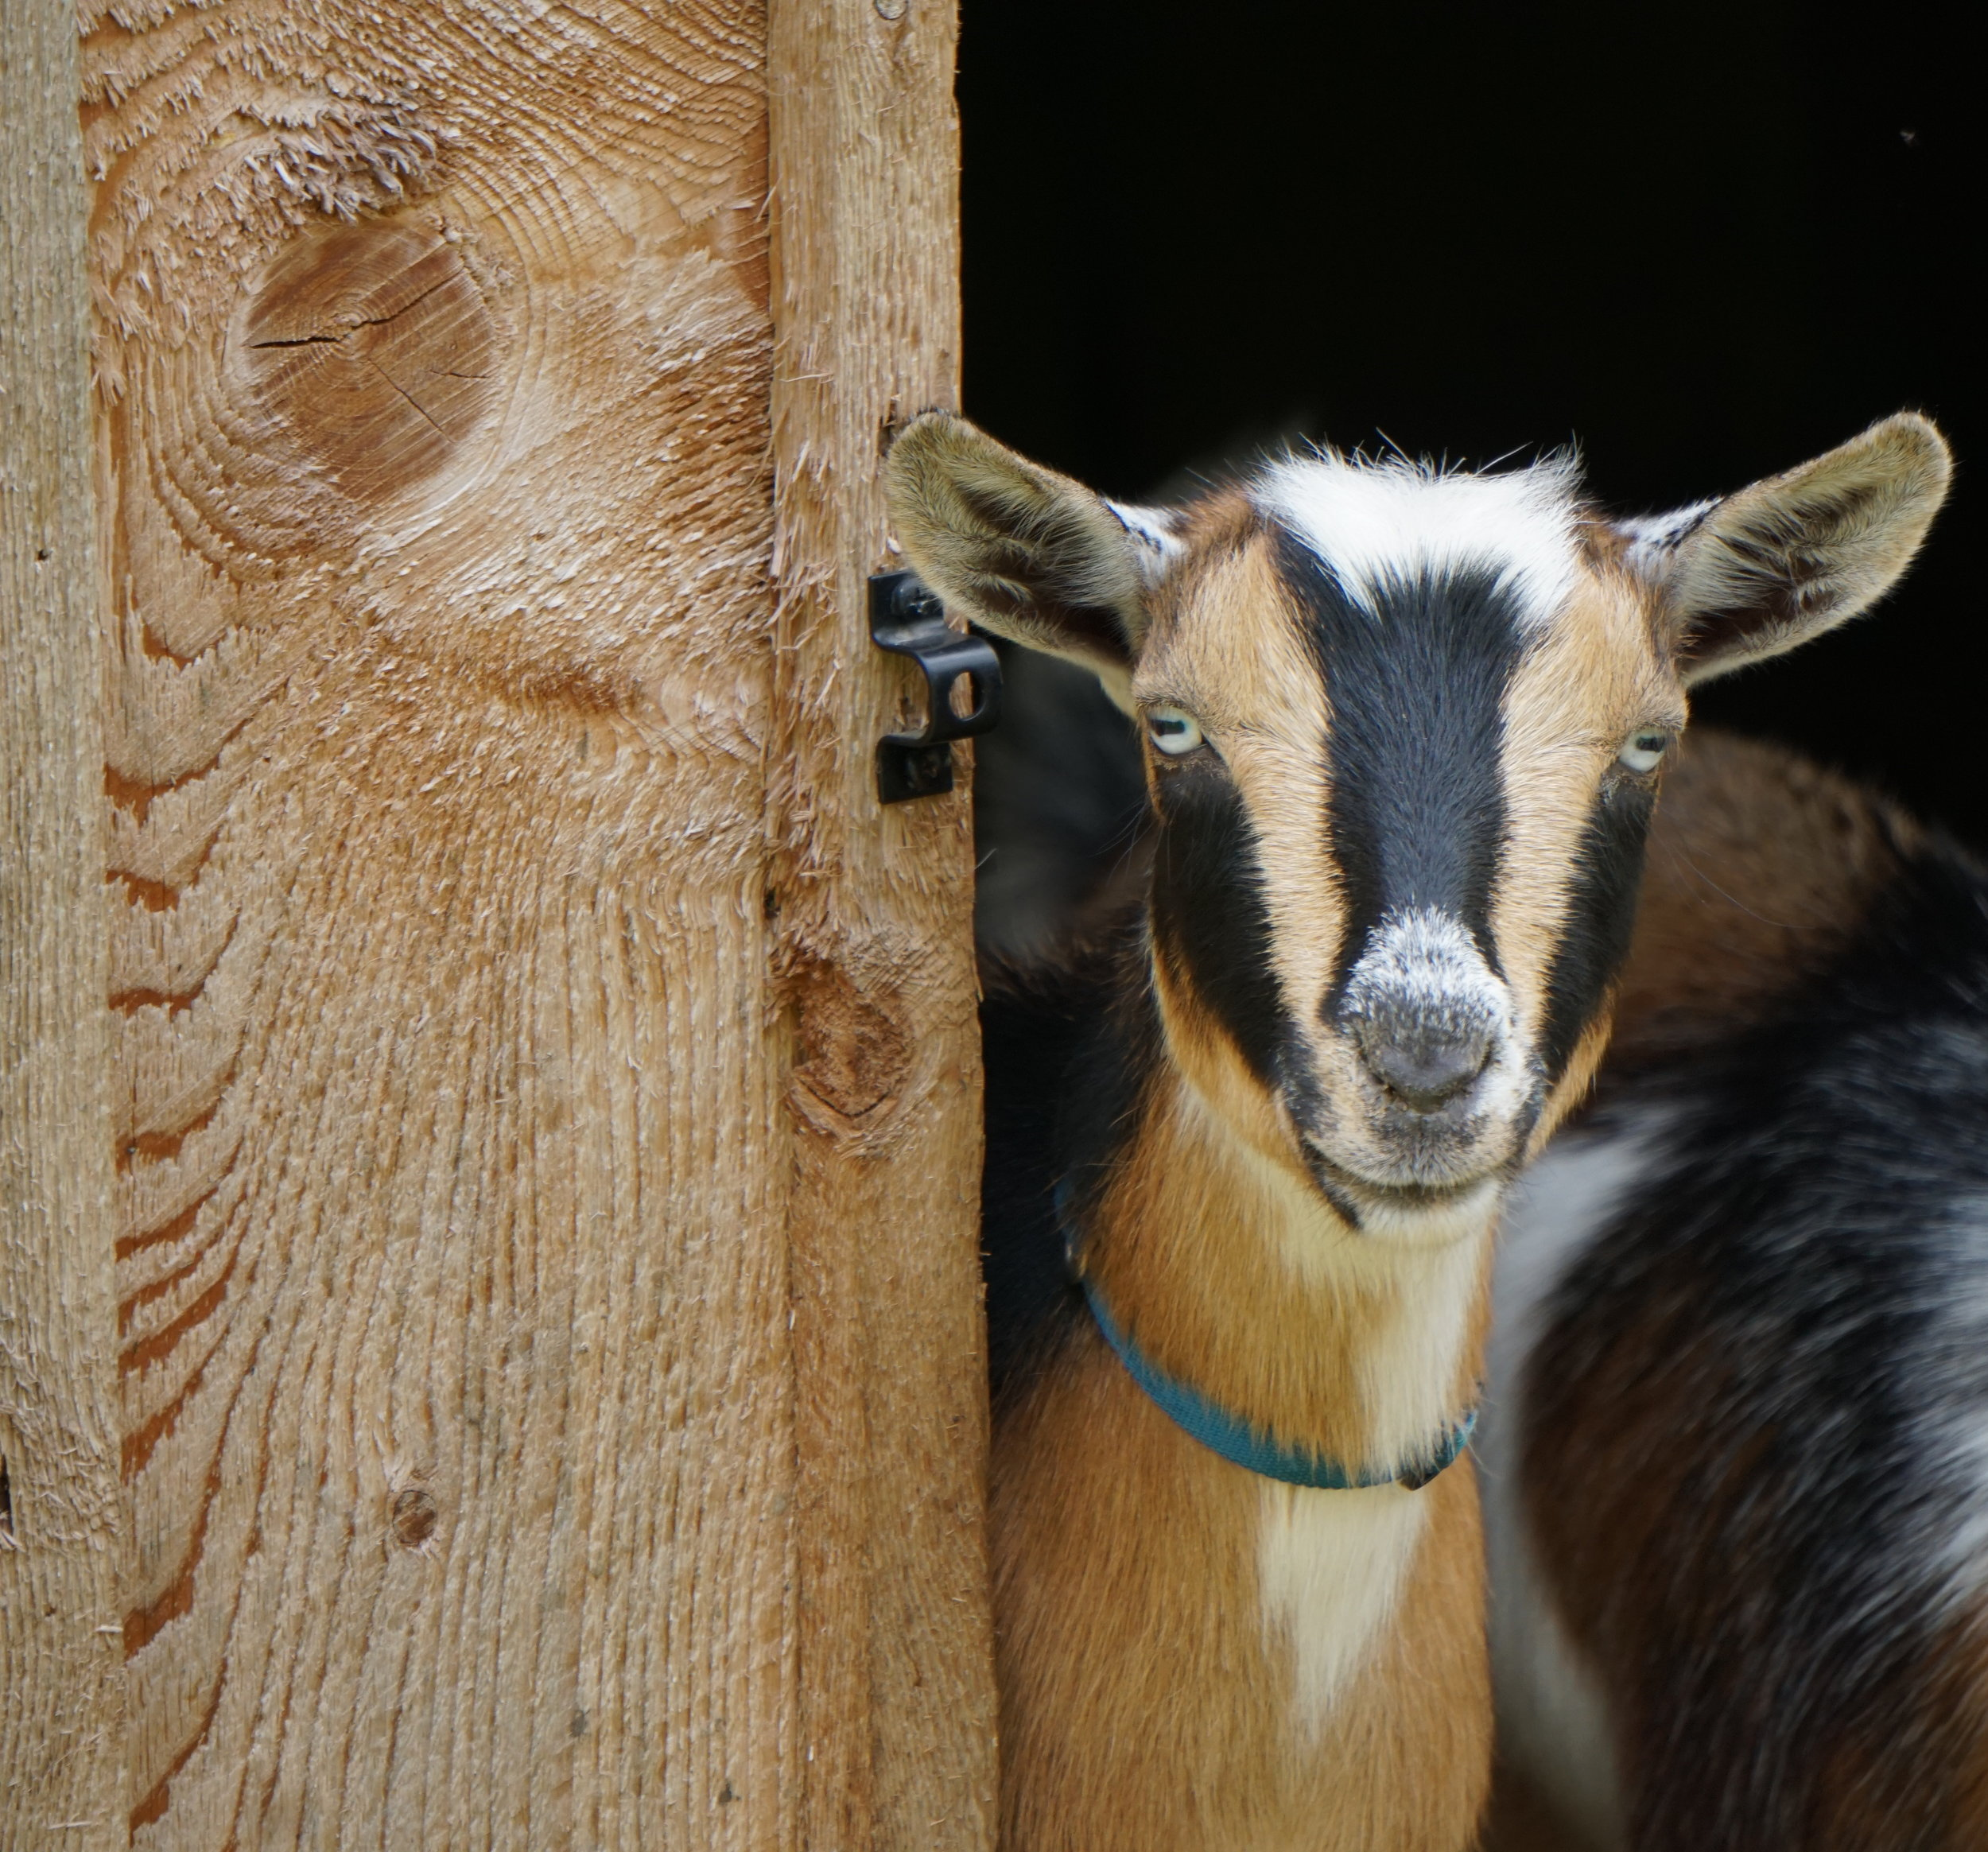 Goat-In-Doorway.JPG